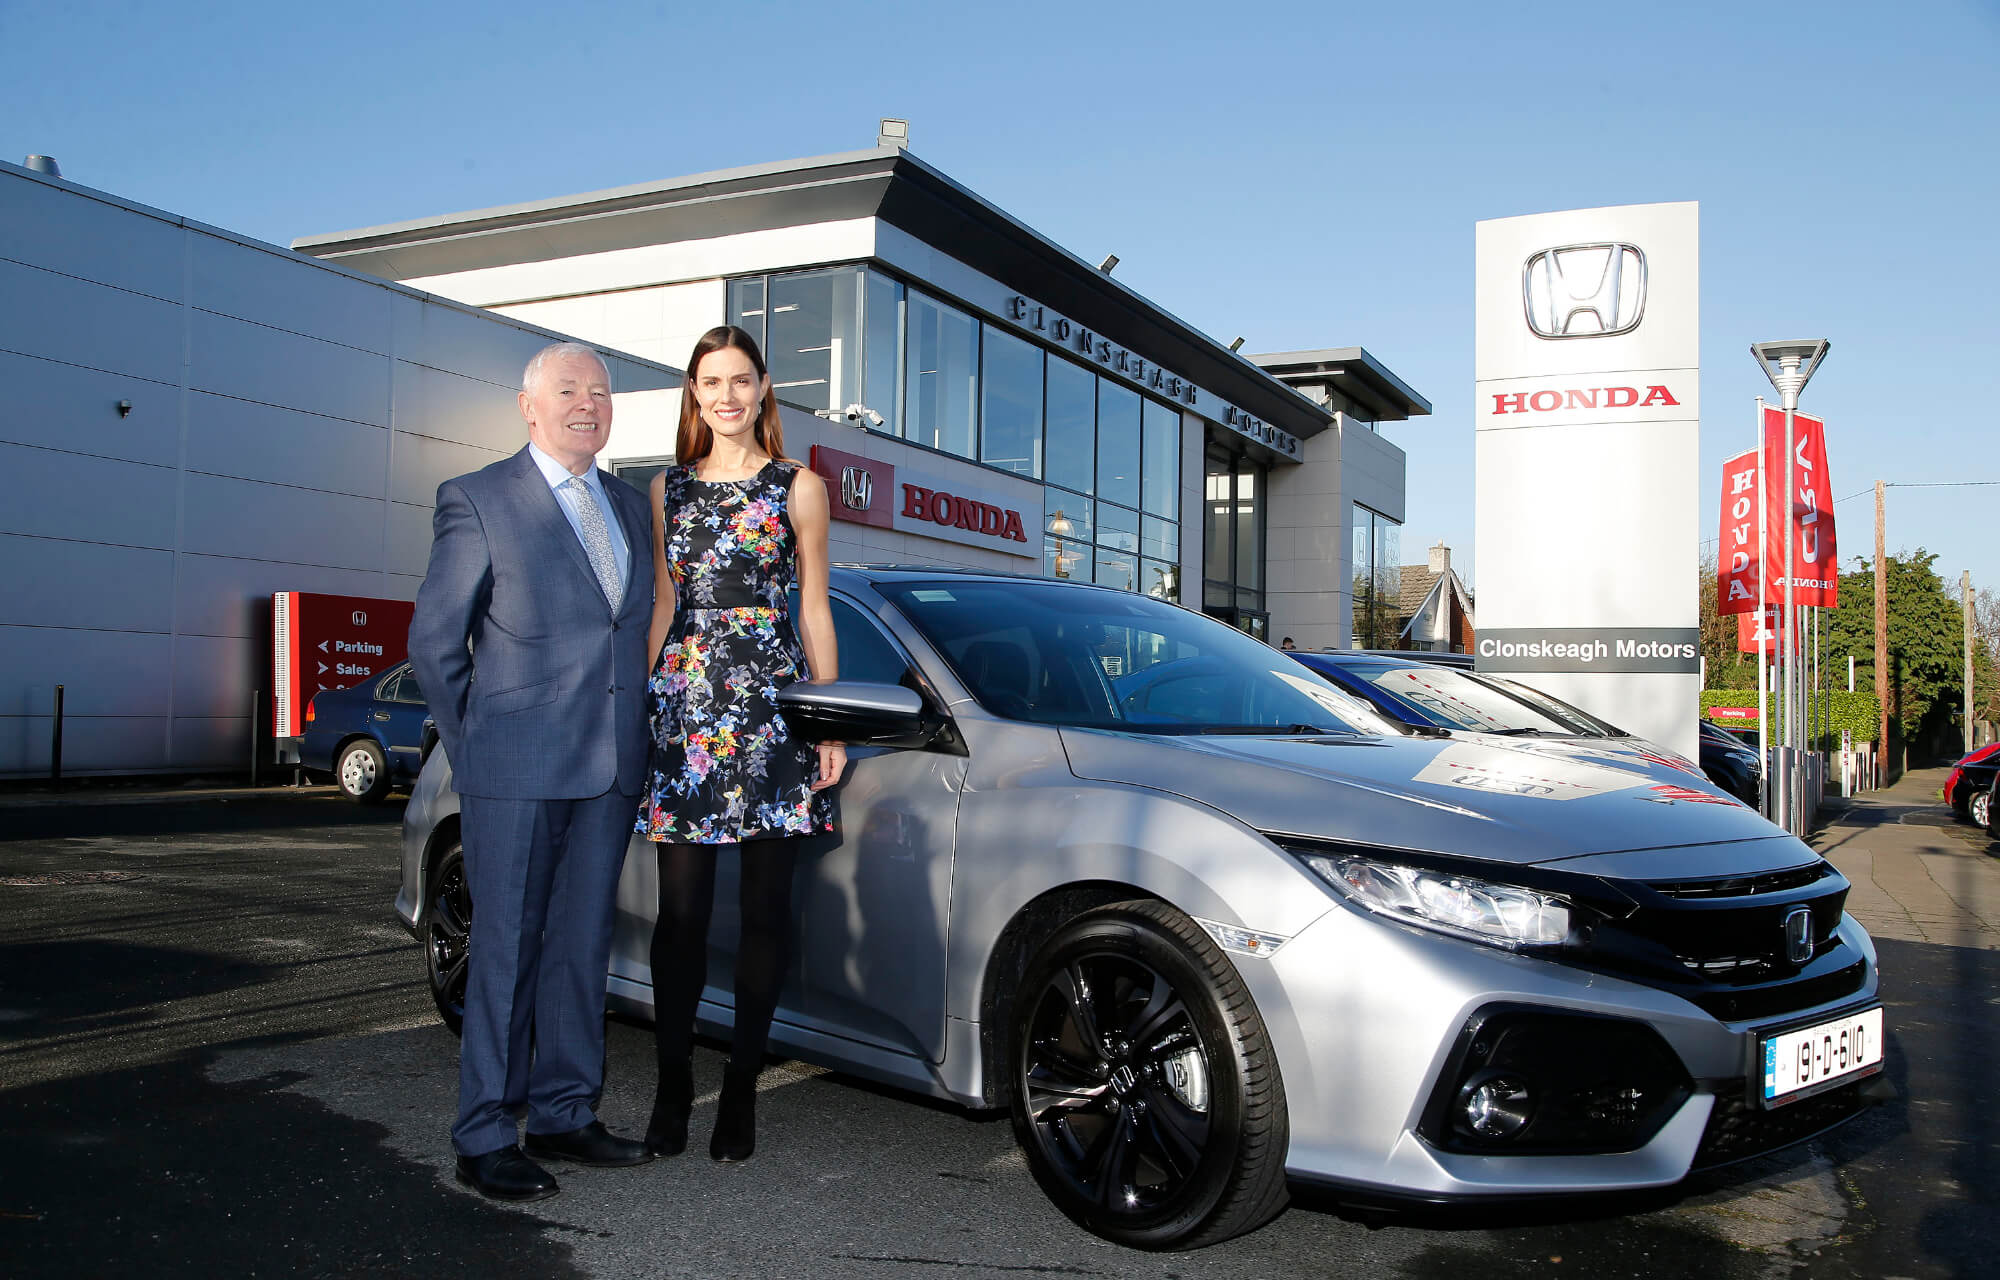 Dermot Murphy Managing Director of Clonskeagh Motors and Alison Canavan Clonskeagh Motors Honda brand ambassador, international model, bestselling author and health and wellness coach